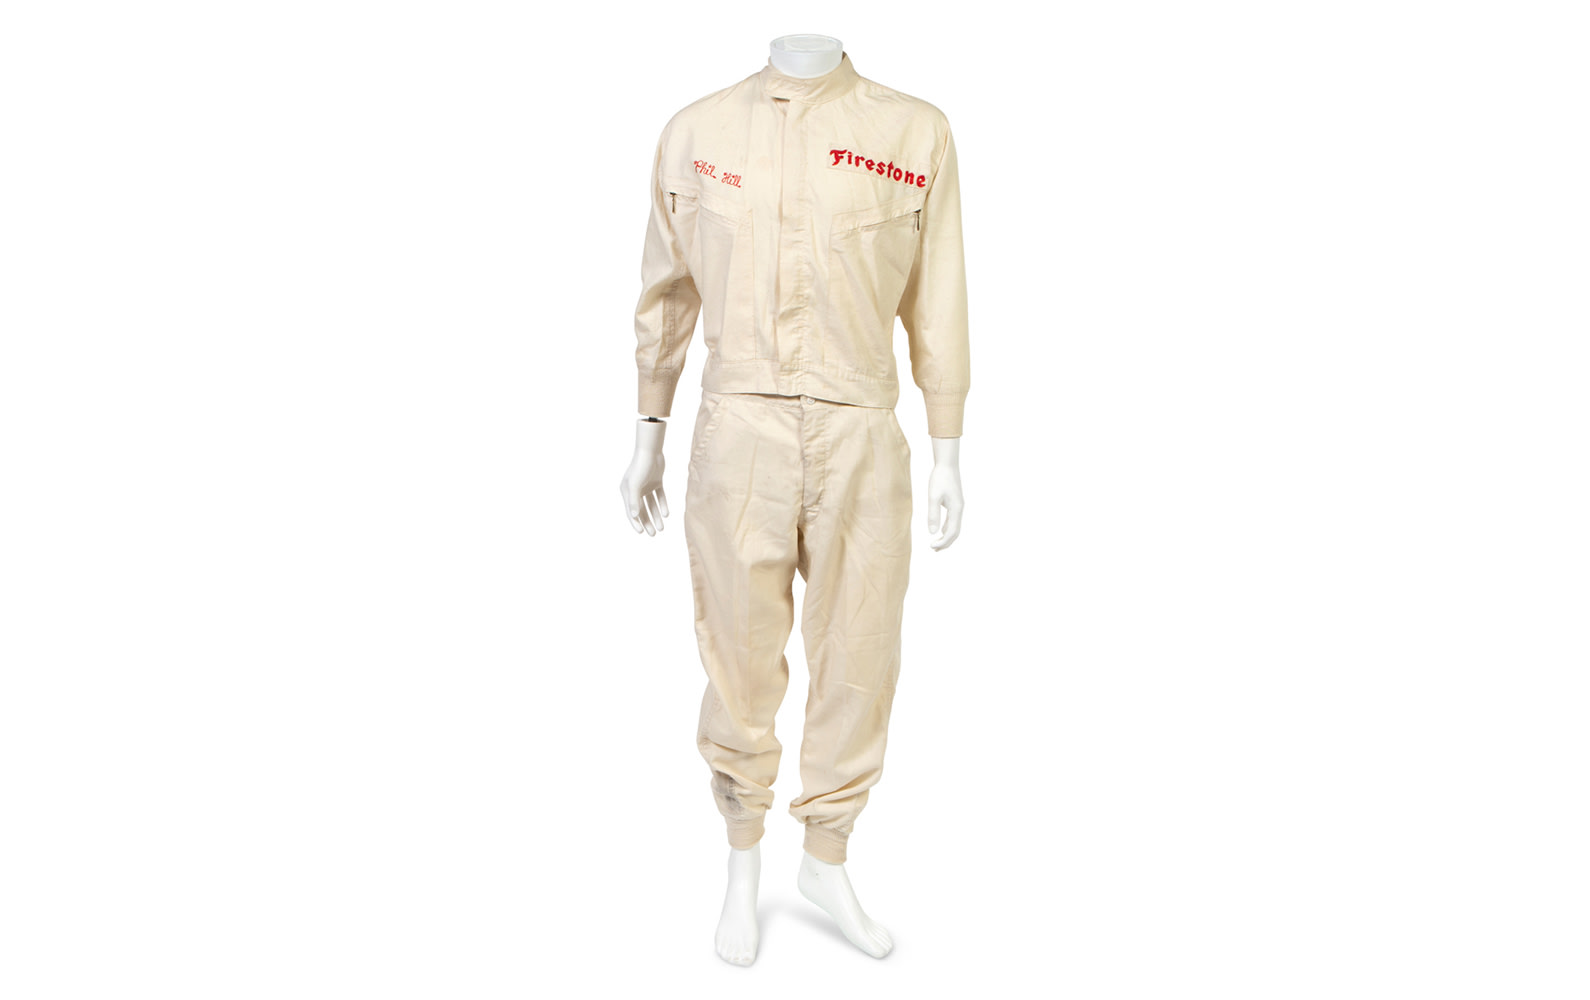 Hinchman Two-Piece Driving Suit, Used During Phil Hill's Time with the Chaparral Racing Team